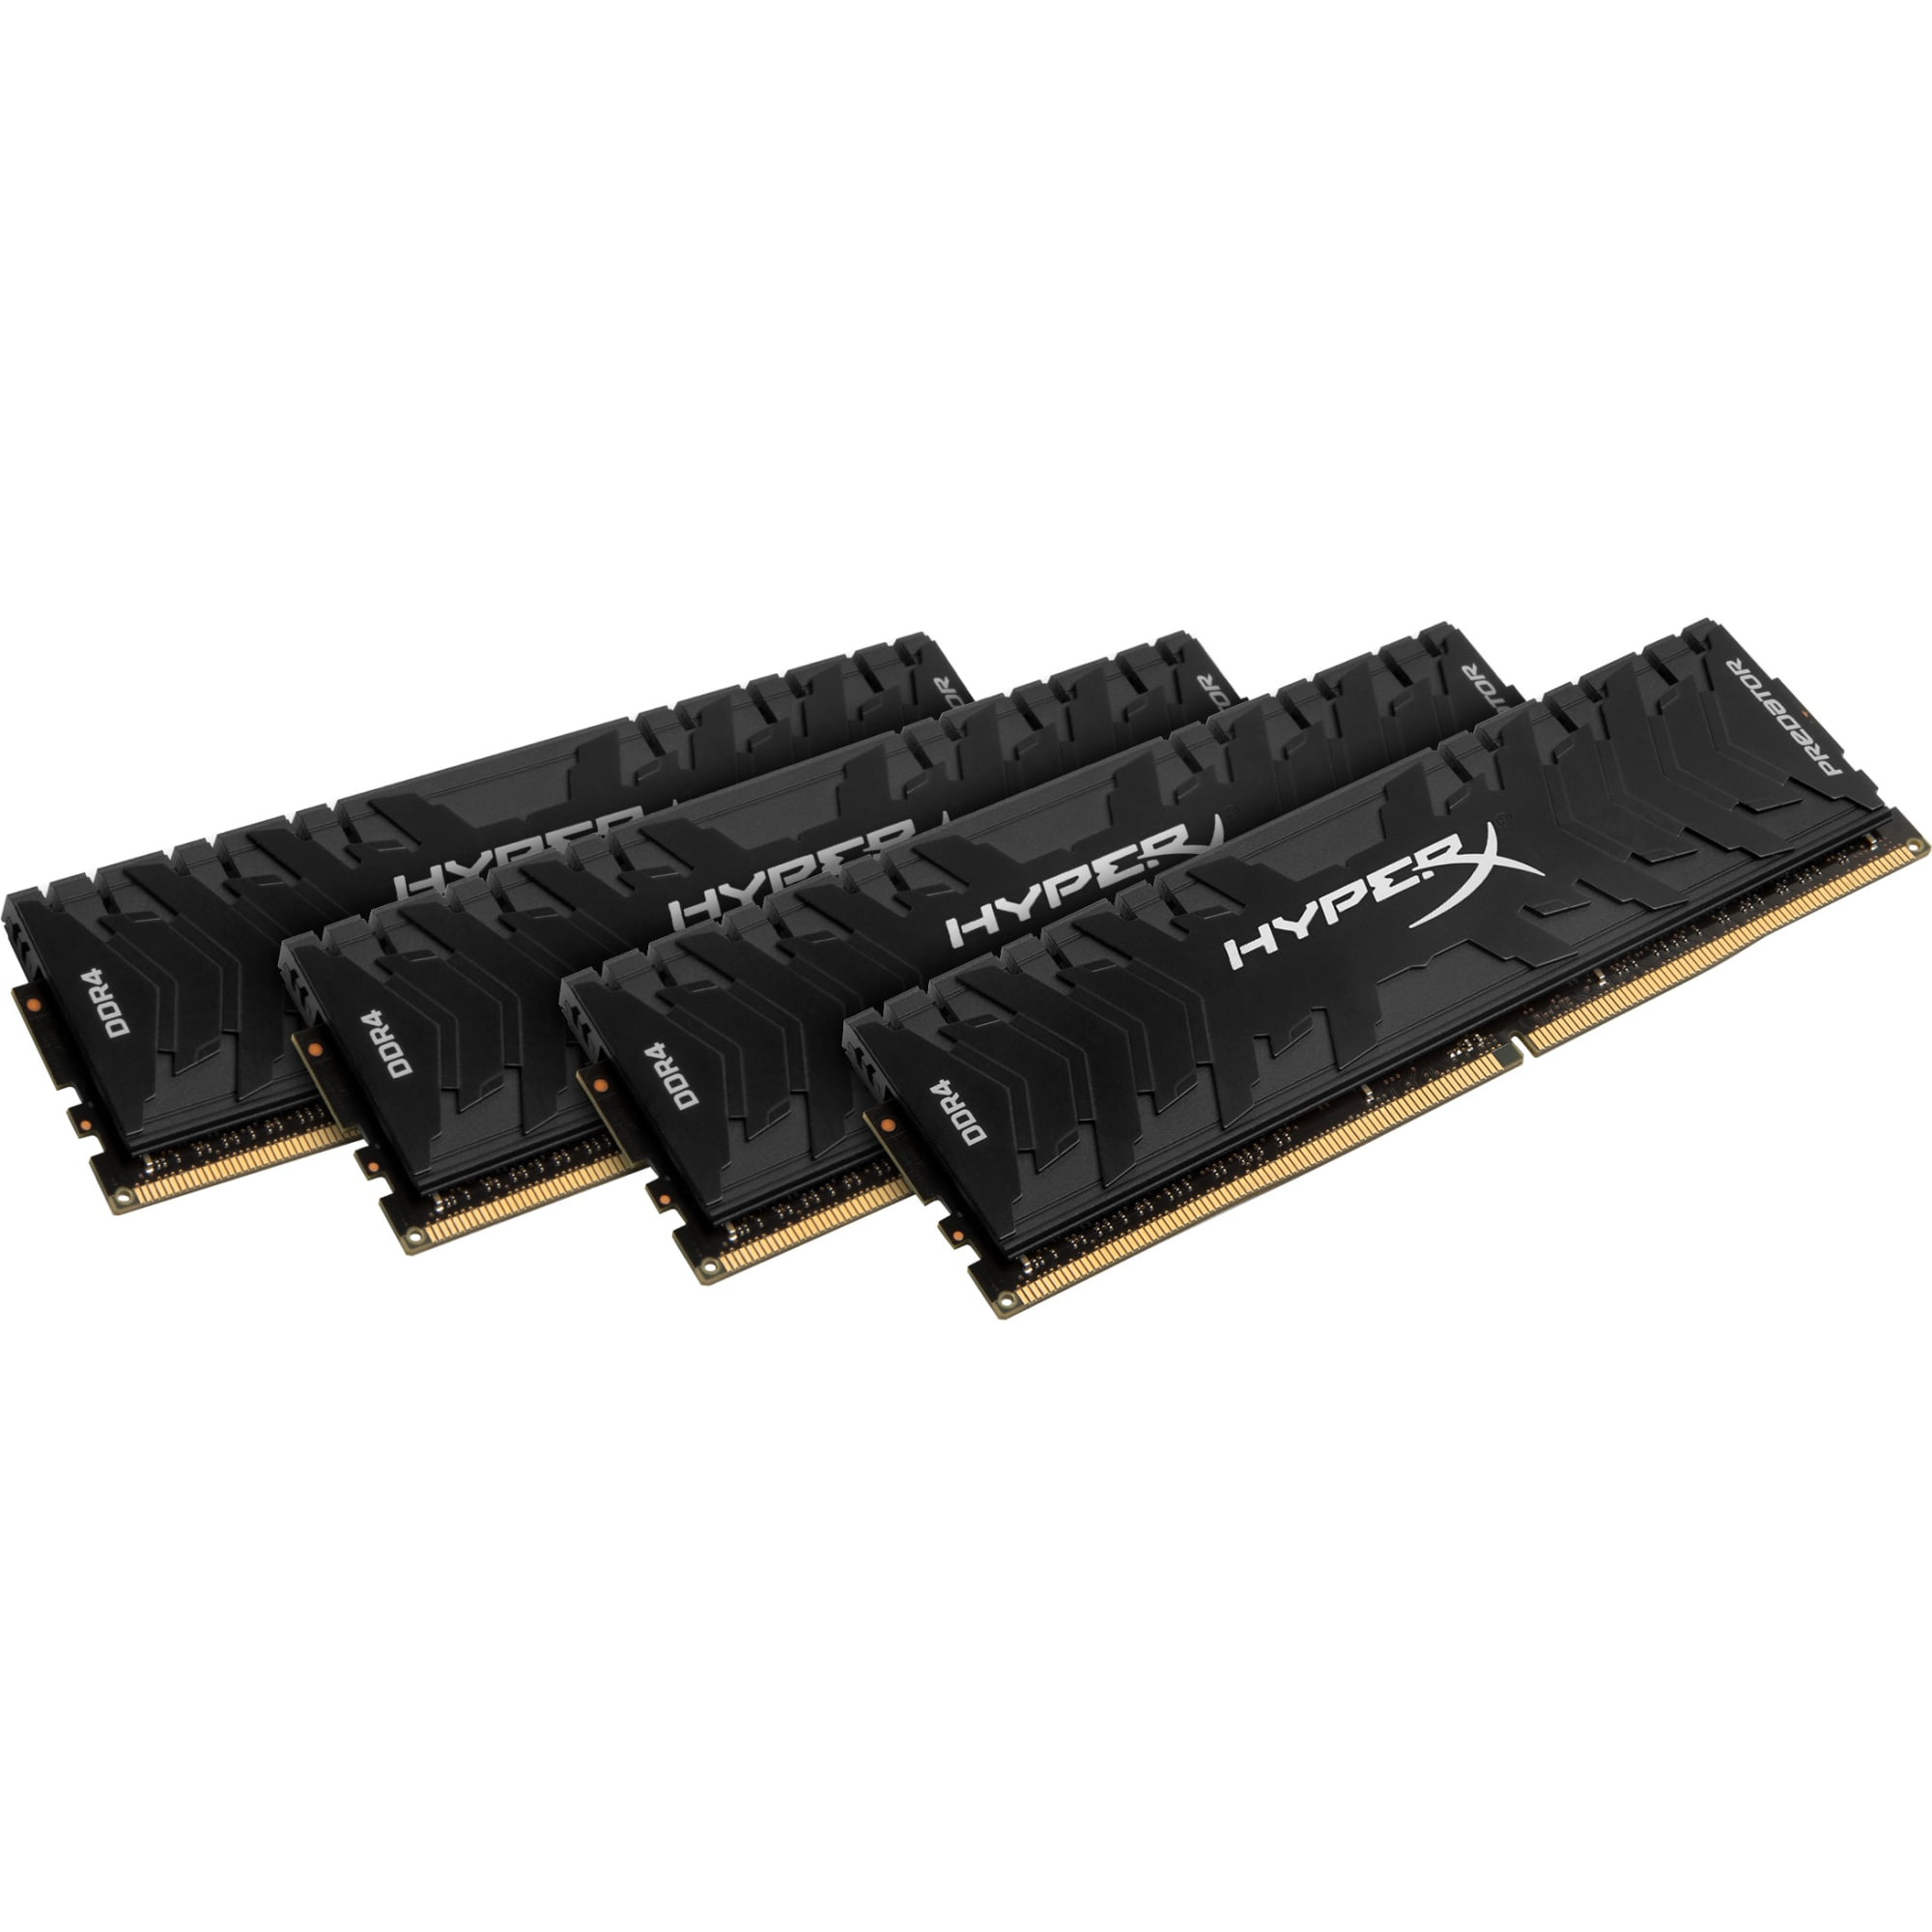 Kingston Predator Memory Black - 32GB Kit (4x8GB) - DDR4 3000MHz Intel XMP CL15 DIMM - 32 GB (4 x 8 GB) - DDR4 SDRAM -